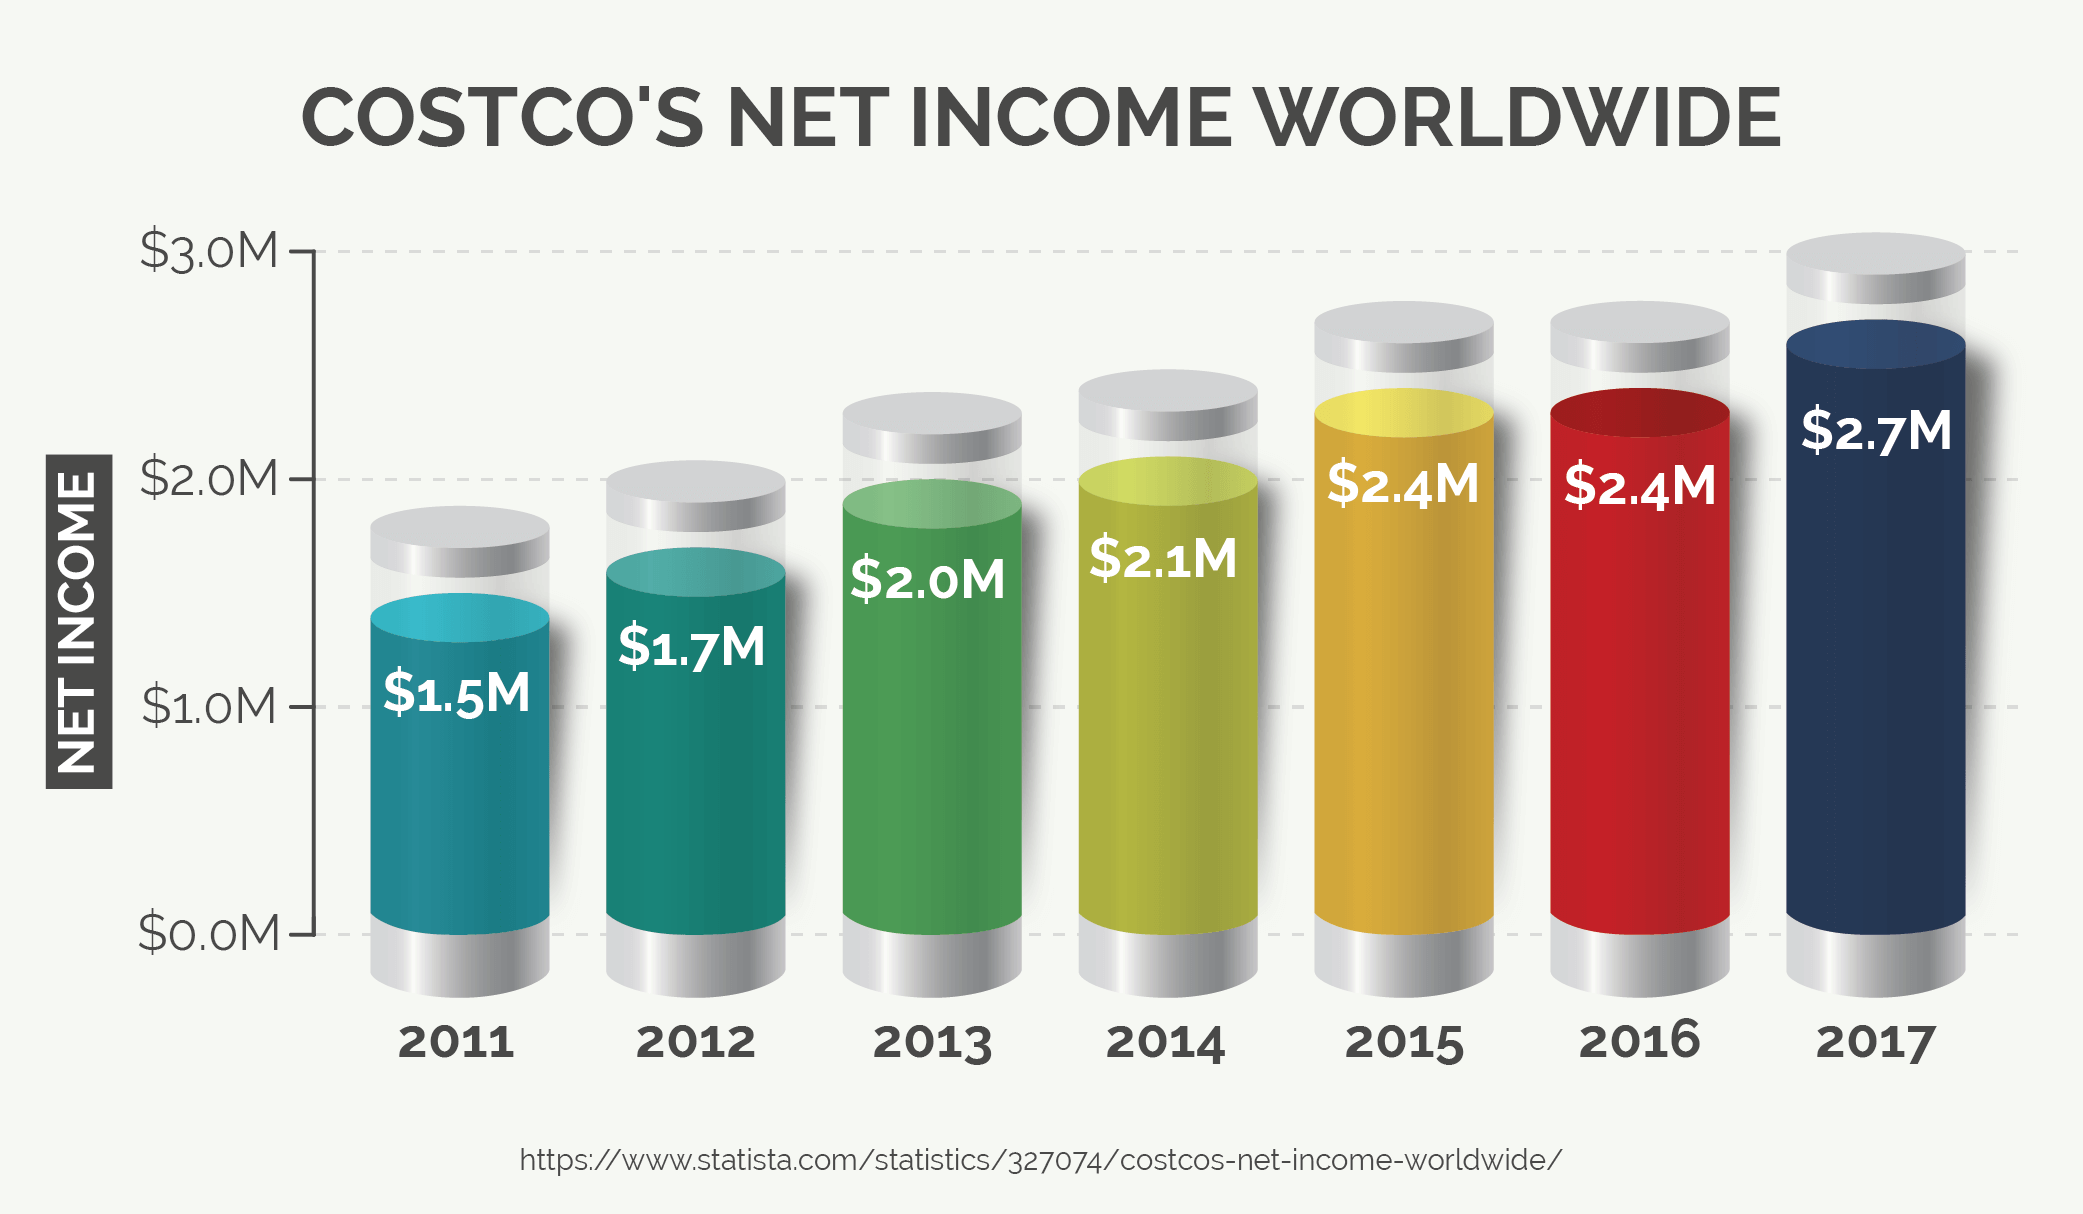 Costco's Net Income Worldwide